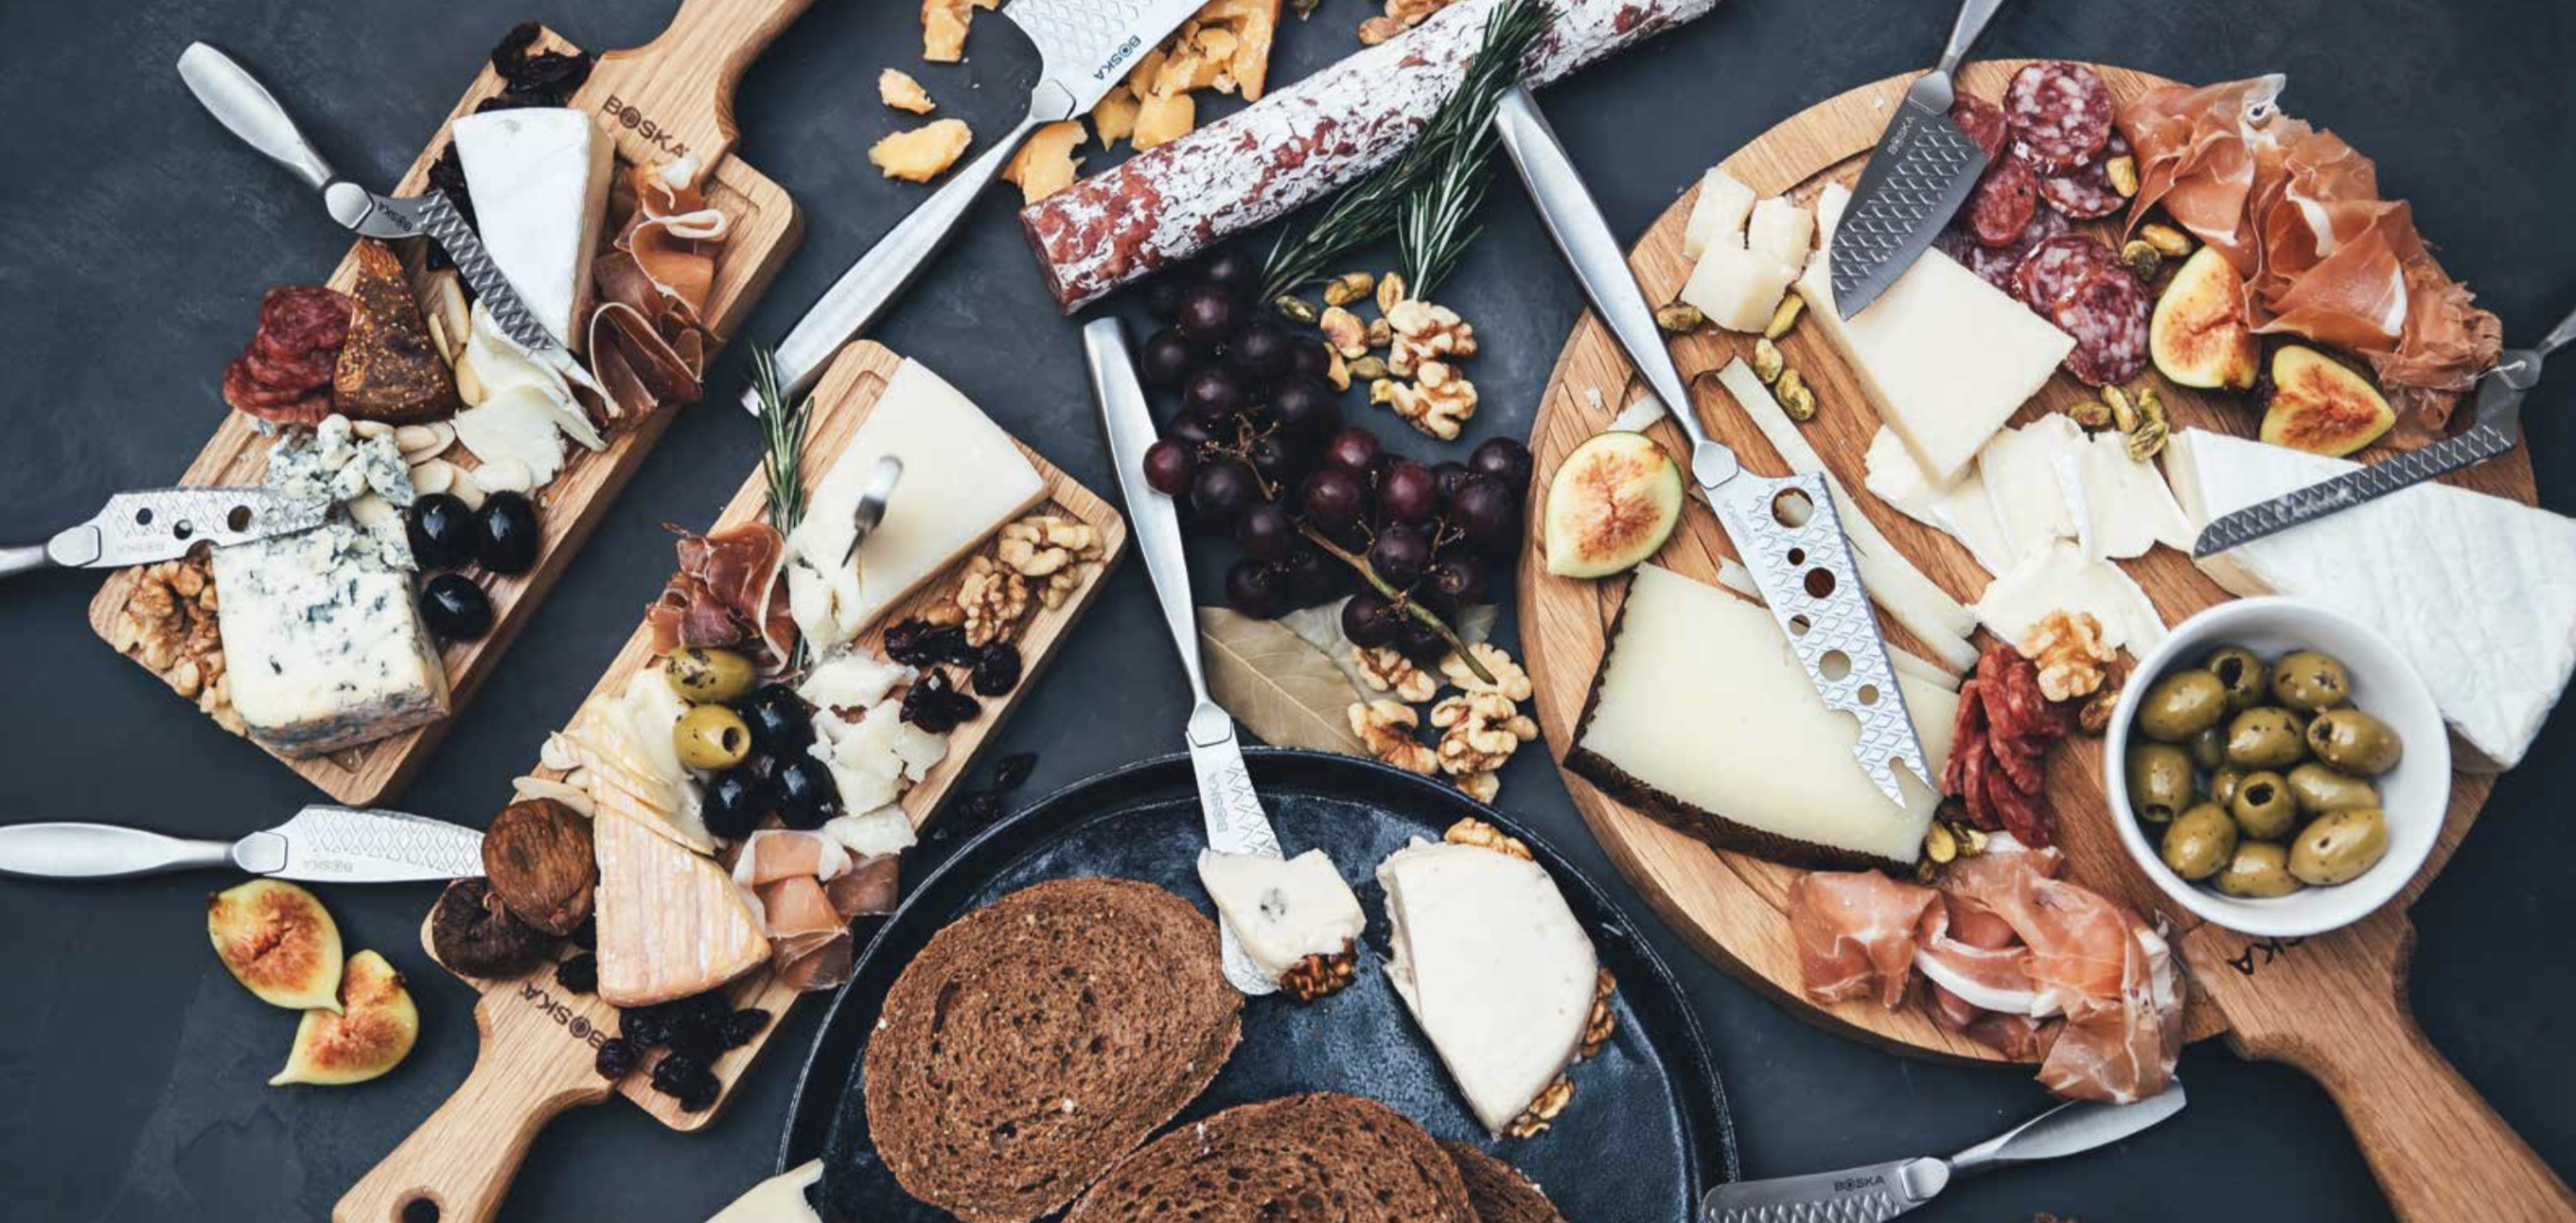 How To Up Your Entertaining Game This Season With Cheese & Chocolate